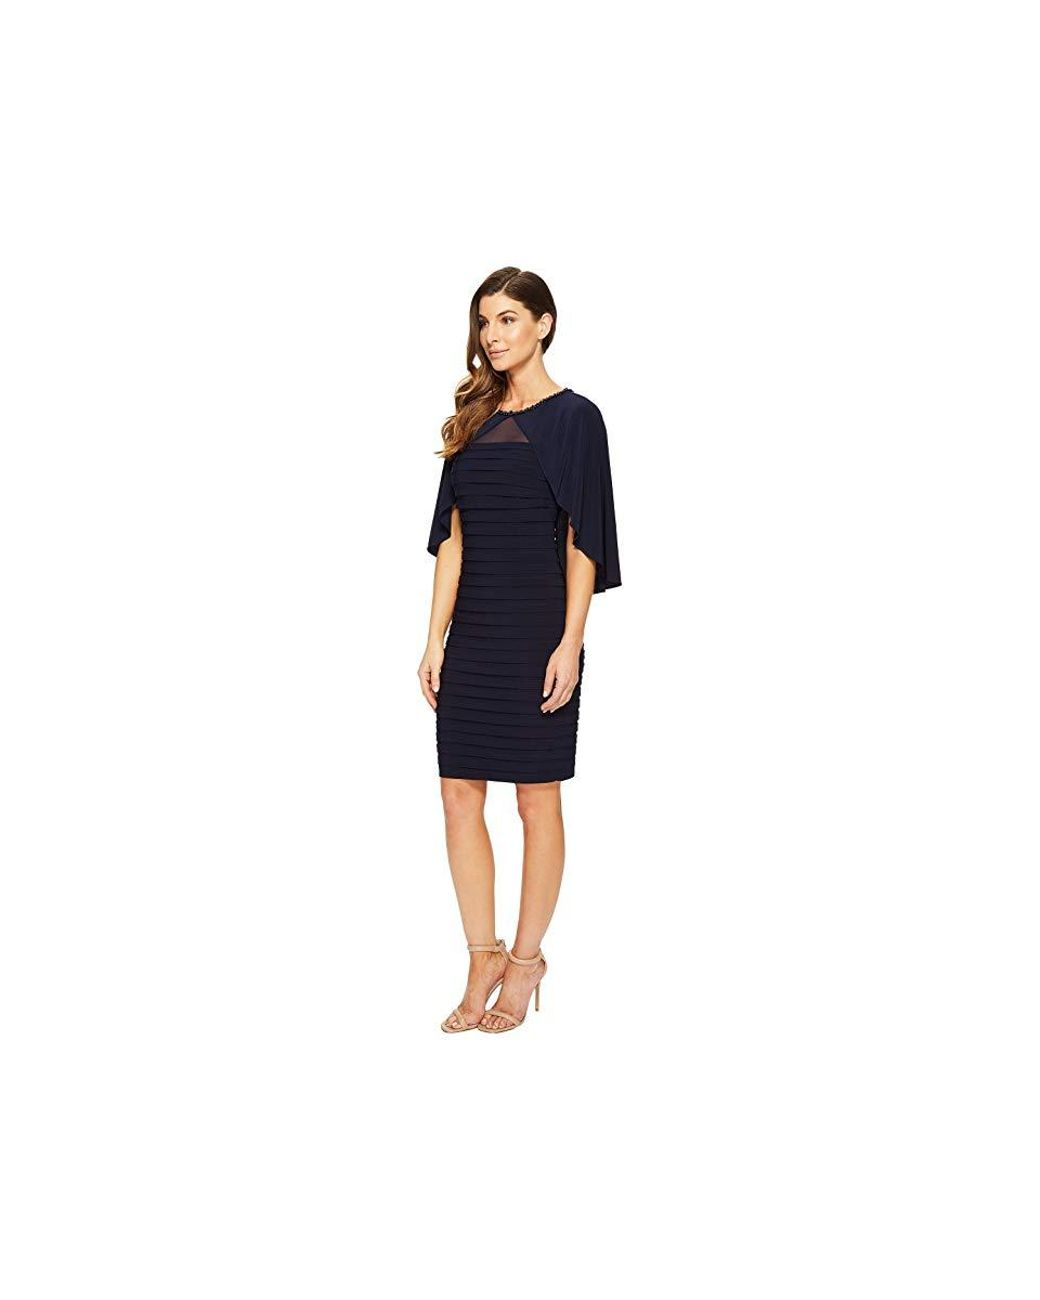 8eb730f77d49 Adrianna Papell Matte Jersey Banded Cape Dress (blue Moon) Dress in Blue -  Save 36% - Lyst